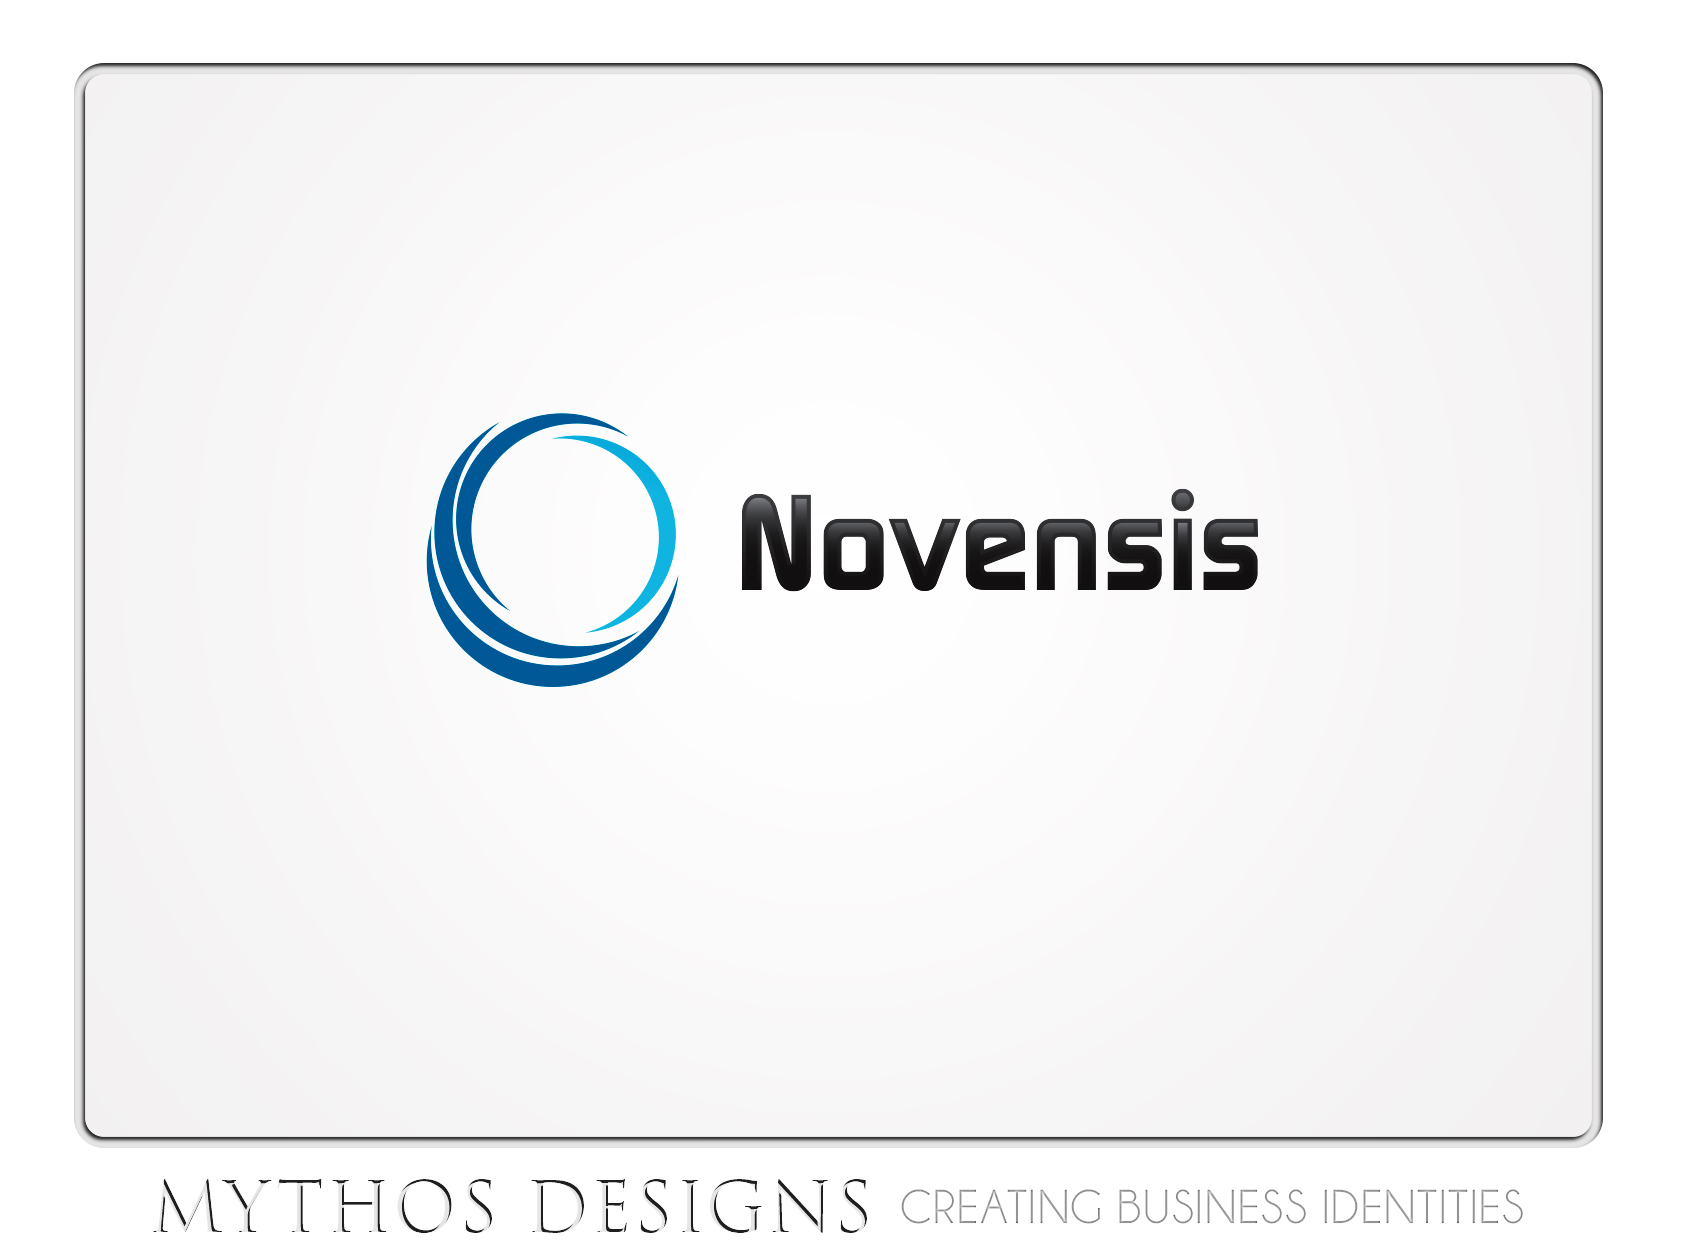 Logo Design by OmegaDesigns - Entry No. 98 in the Logo Design Contest Novensis Logo Design.